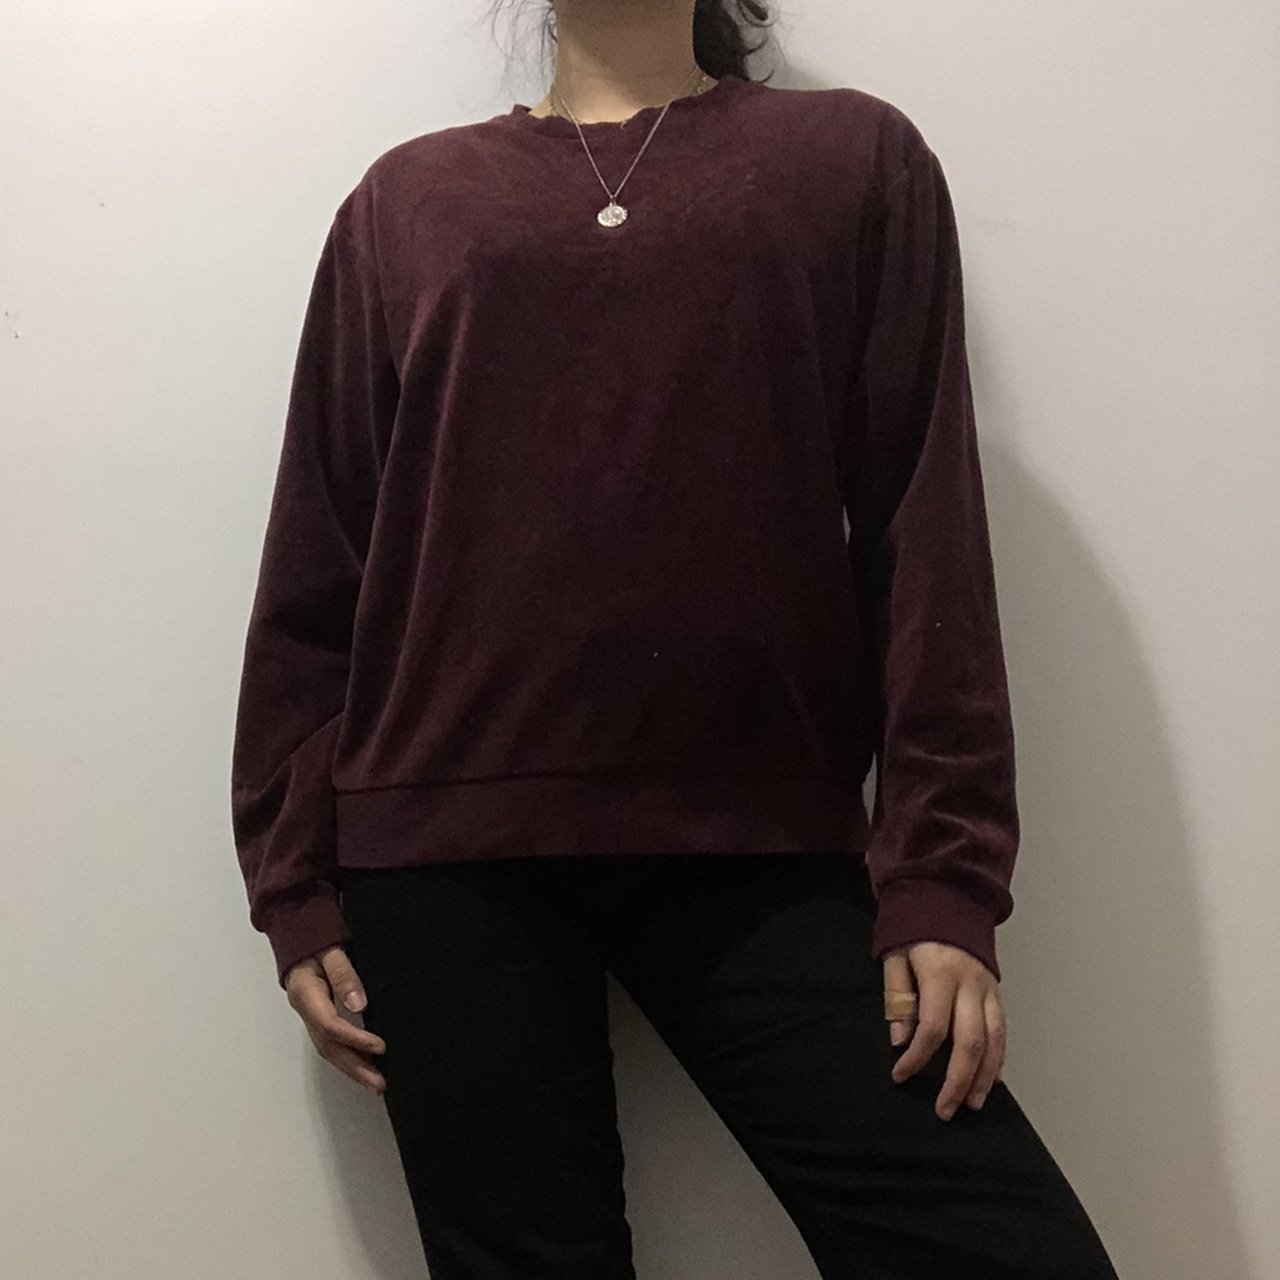 Velvet maroon crew neck sweater from American apparel! The - Depop e17c62dd8c6c